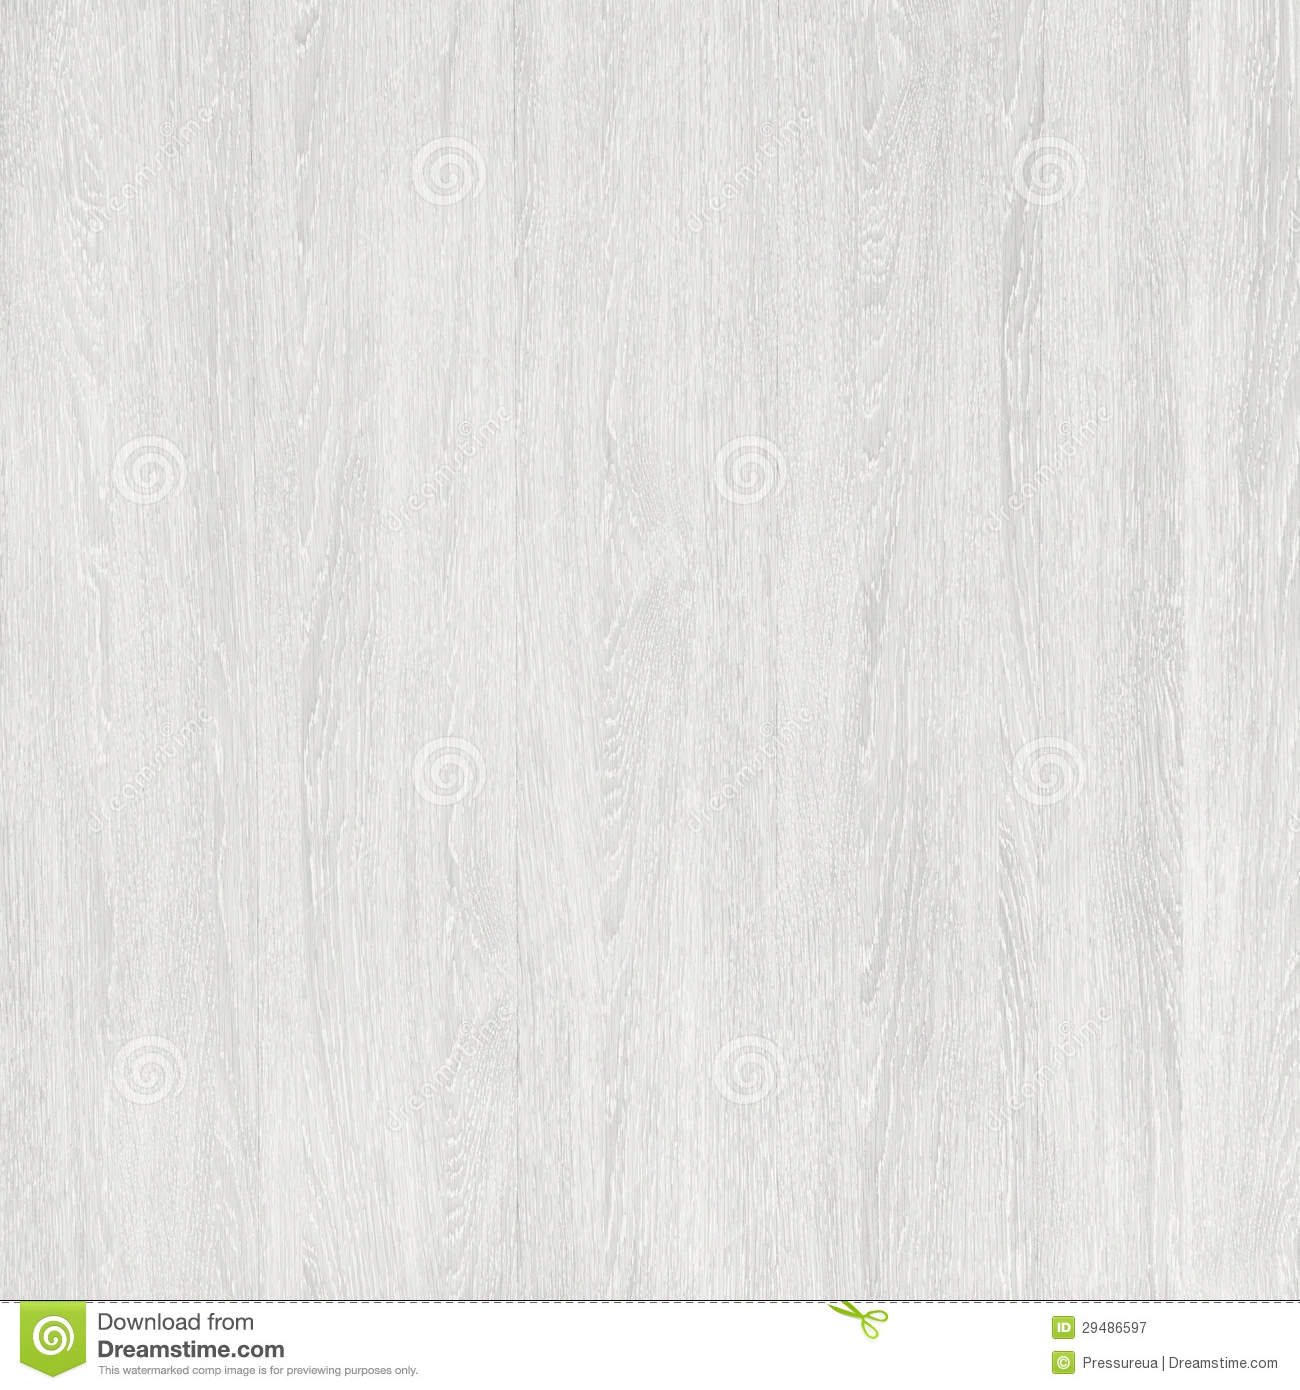 seamless loft white parquet texture stock image image 29486597. Black Bedroom Furniture Sets. Home Design Ideas